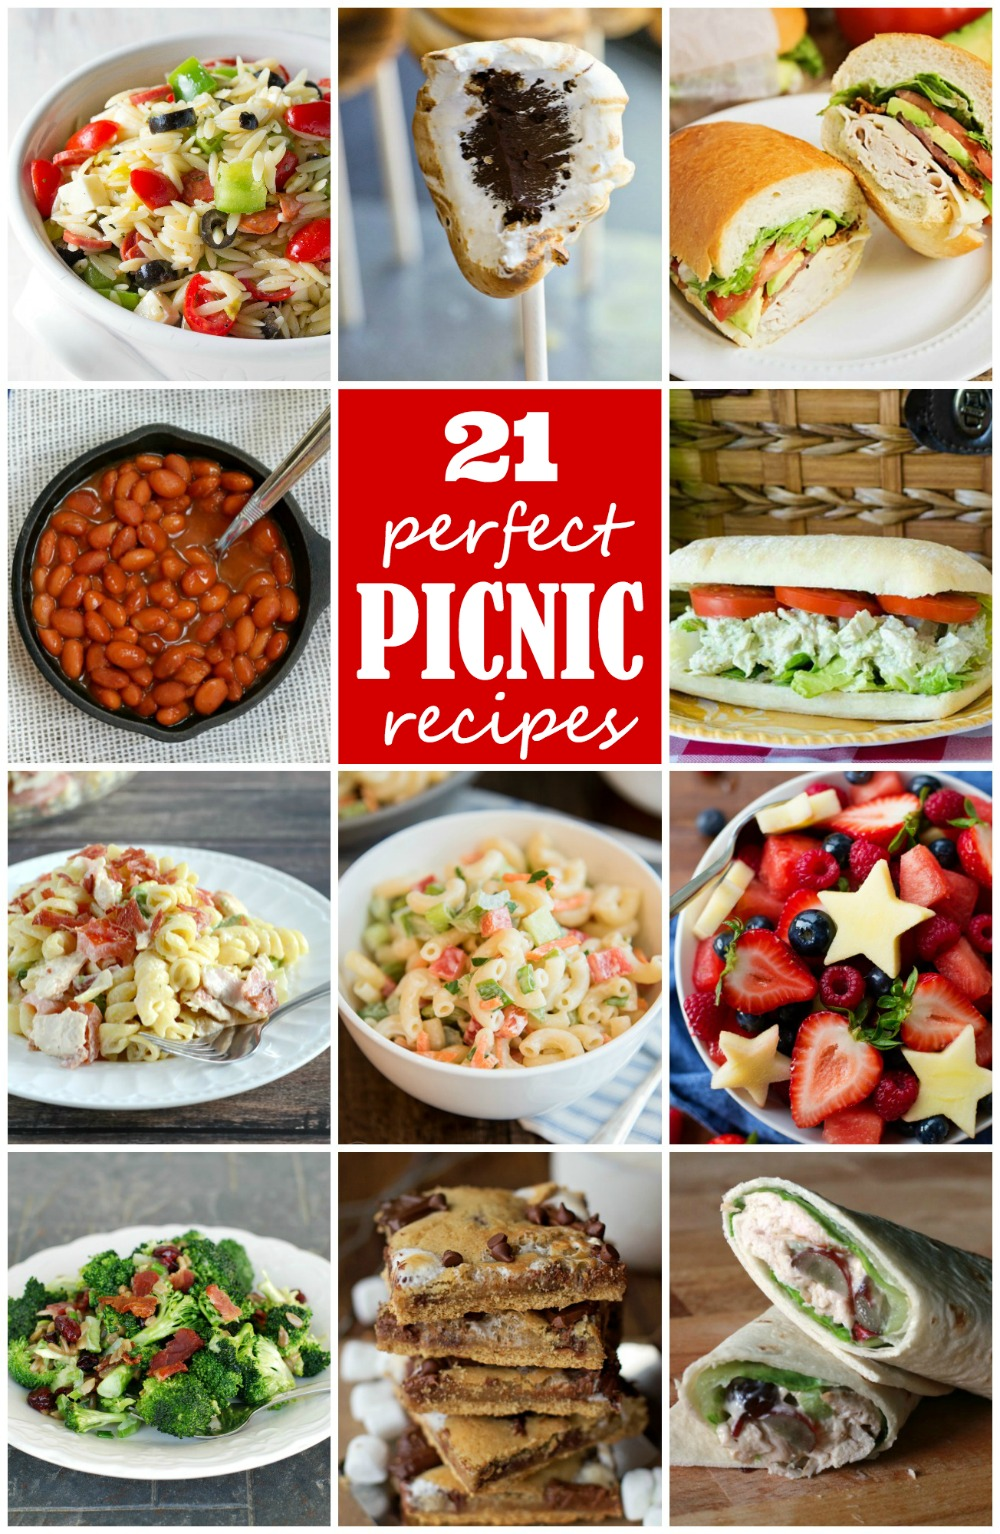 21 Perfect Picnic Recipes from your favorite food bloggers!